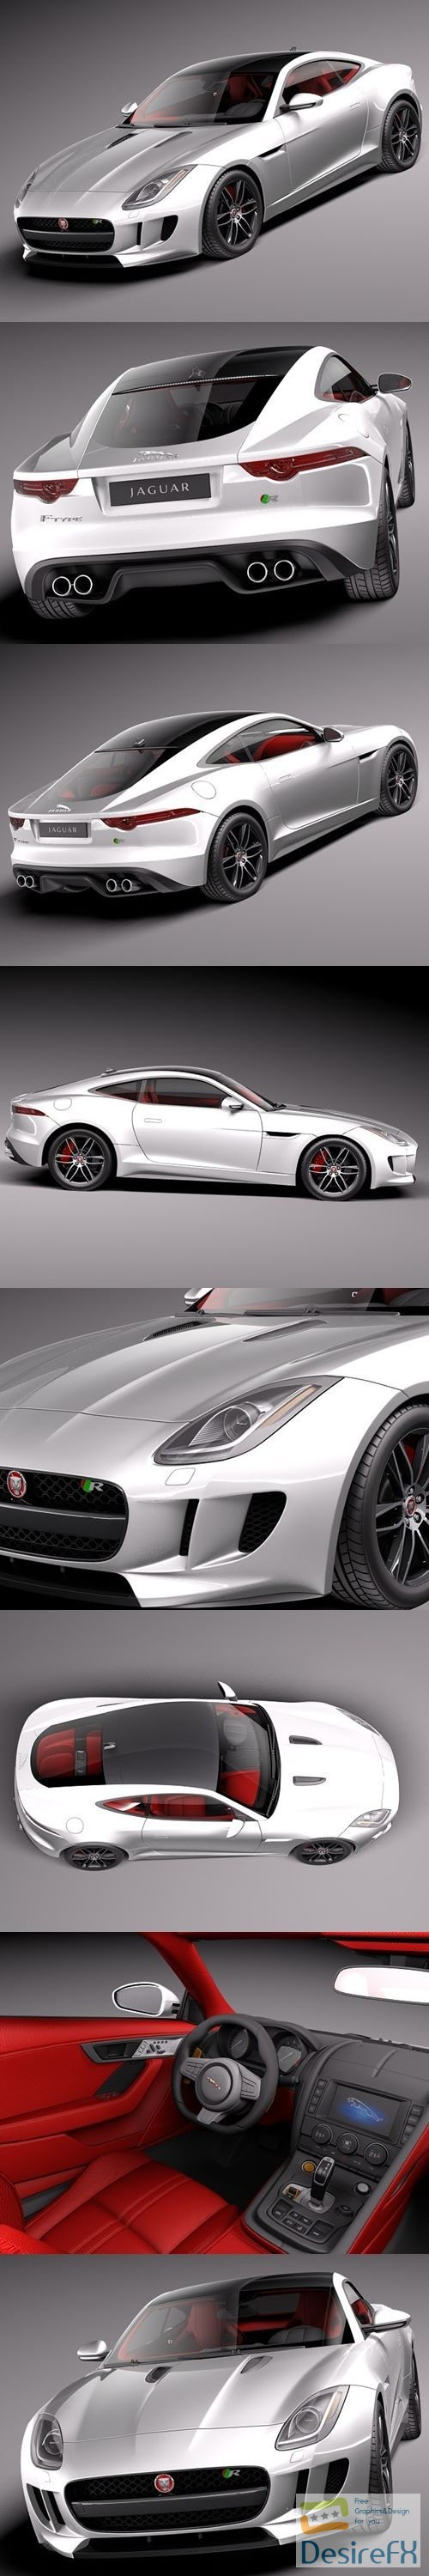 3d-models - Jaguar F-Type R Coupe 2015 3D Model